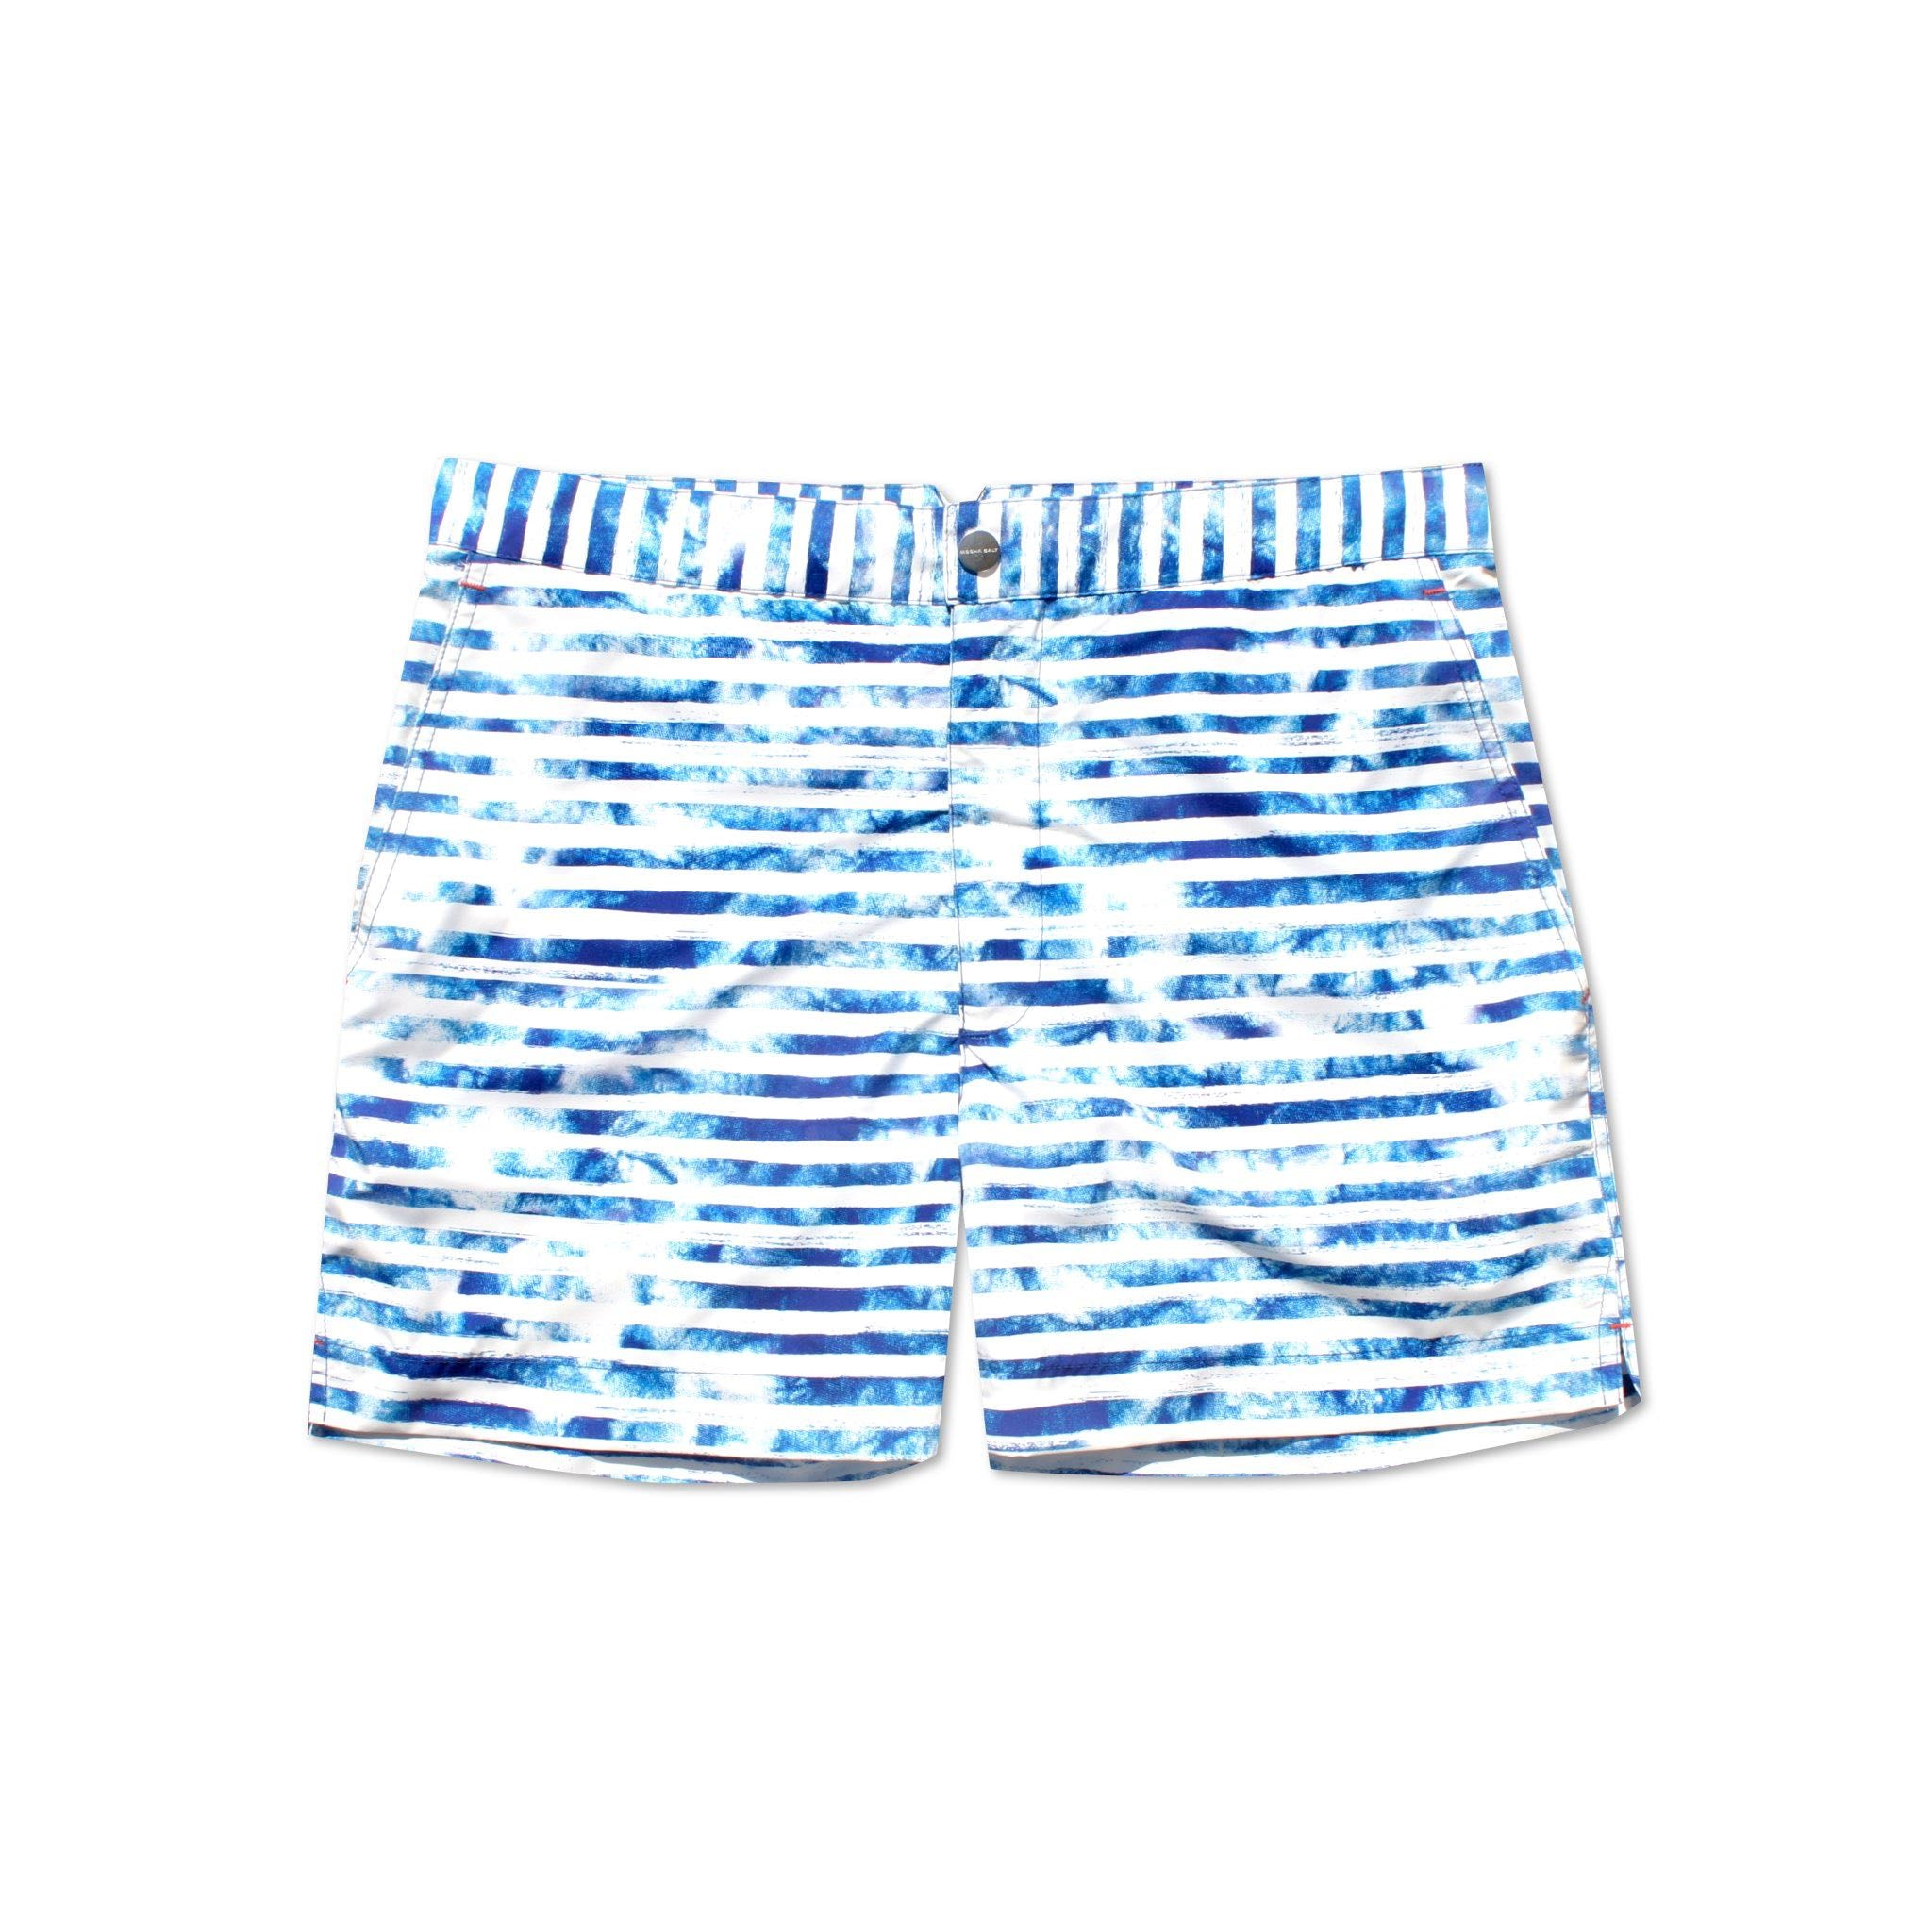 H5 White Stripe swim shorts